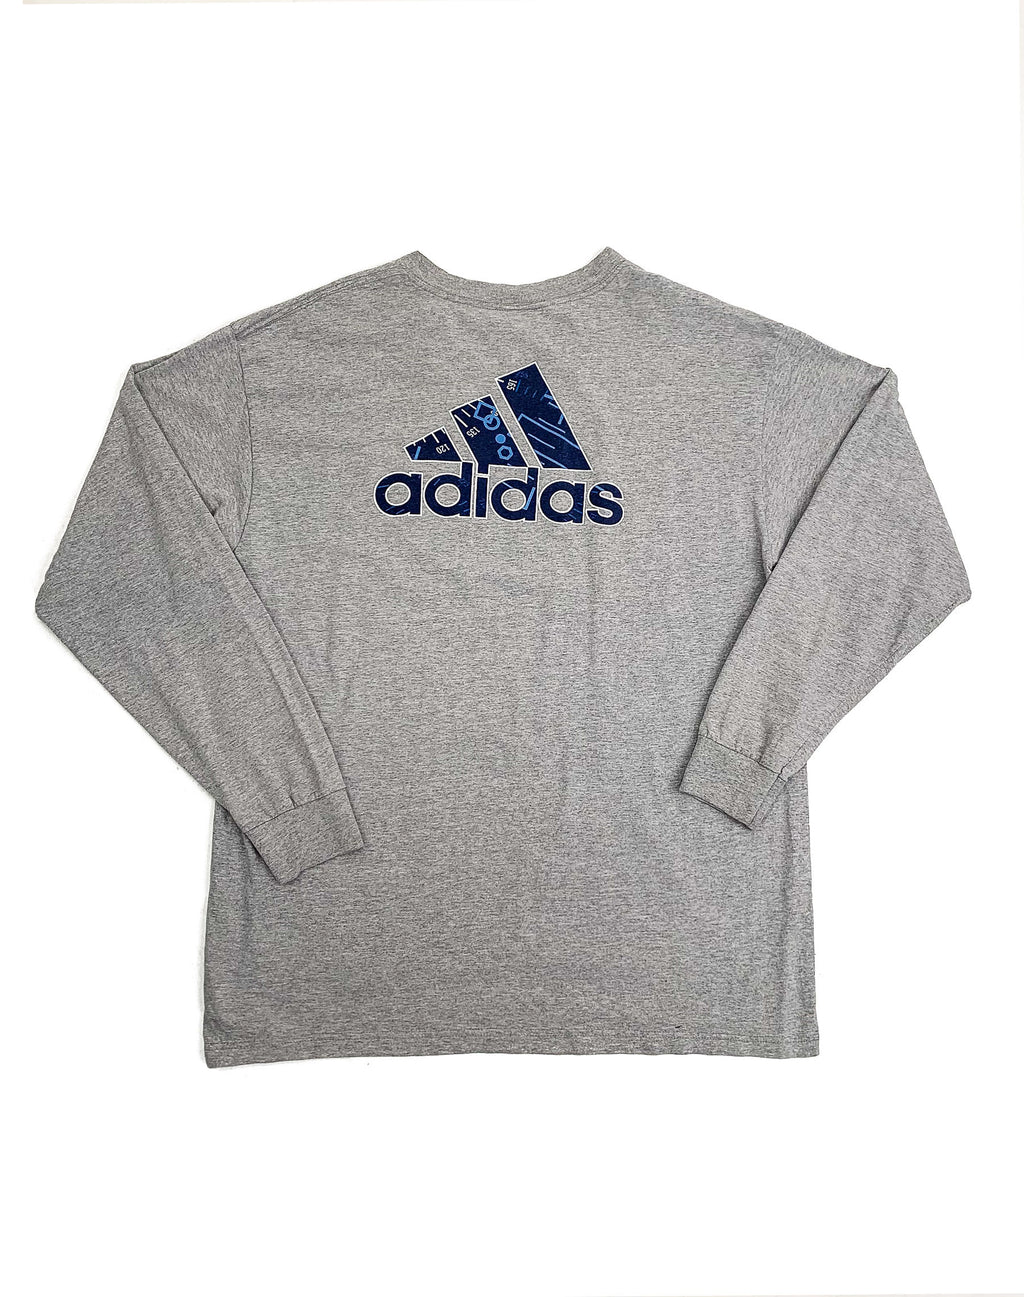 ADIDAS LONG SLEEVE LOGO T-SHIRT